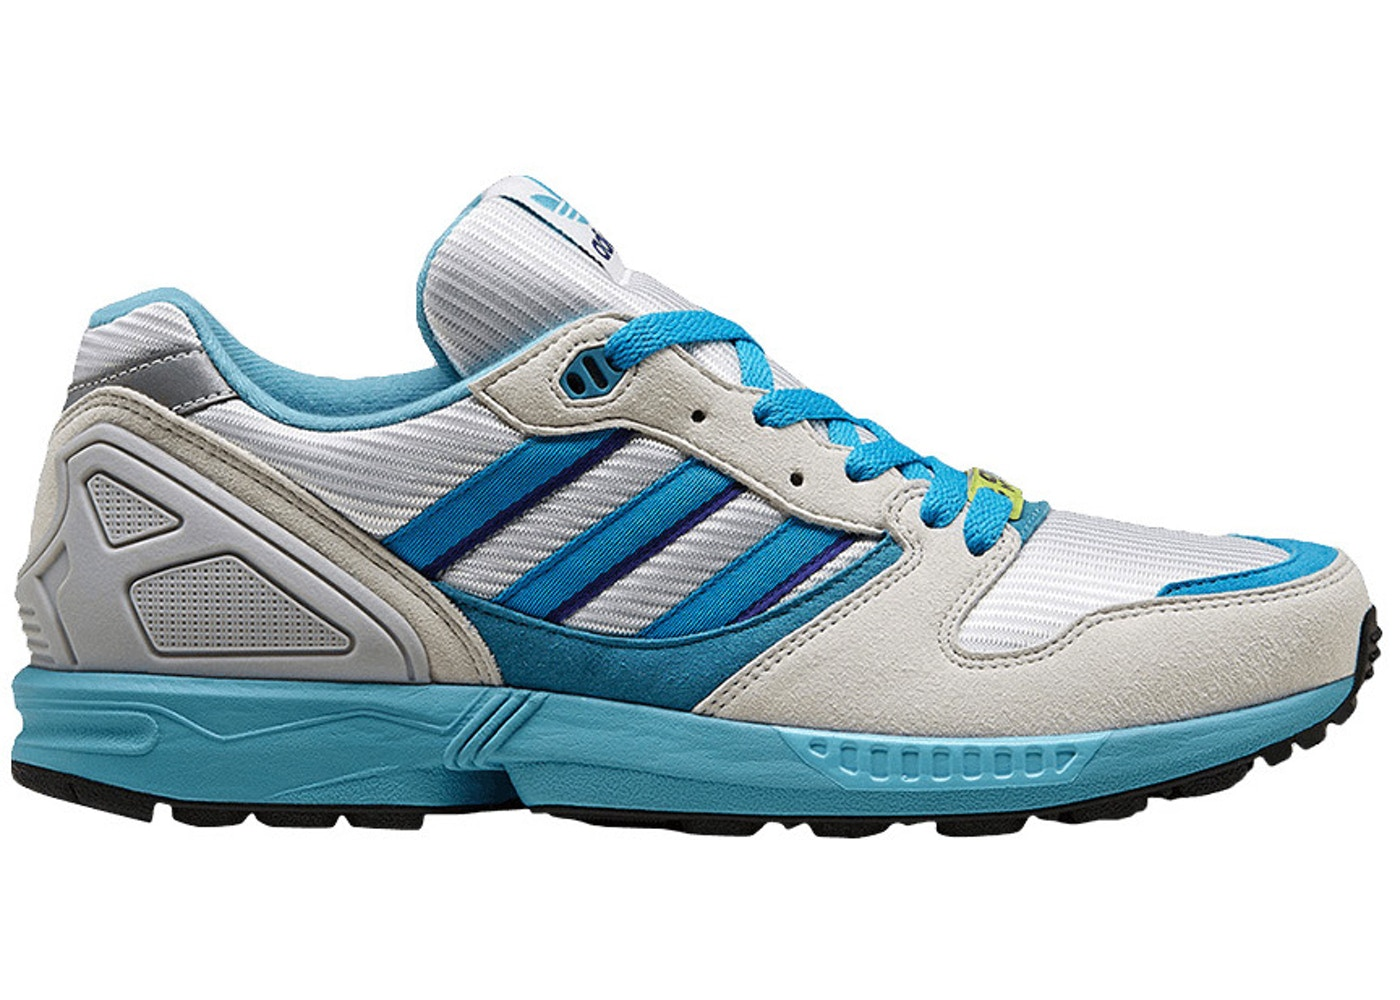 メンズ靴, スニーカー  ADIDAS ZX 5000 30 YEARS OF TORSION WHITE BLUE